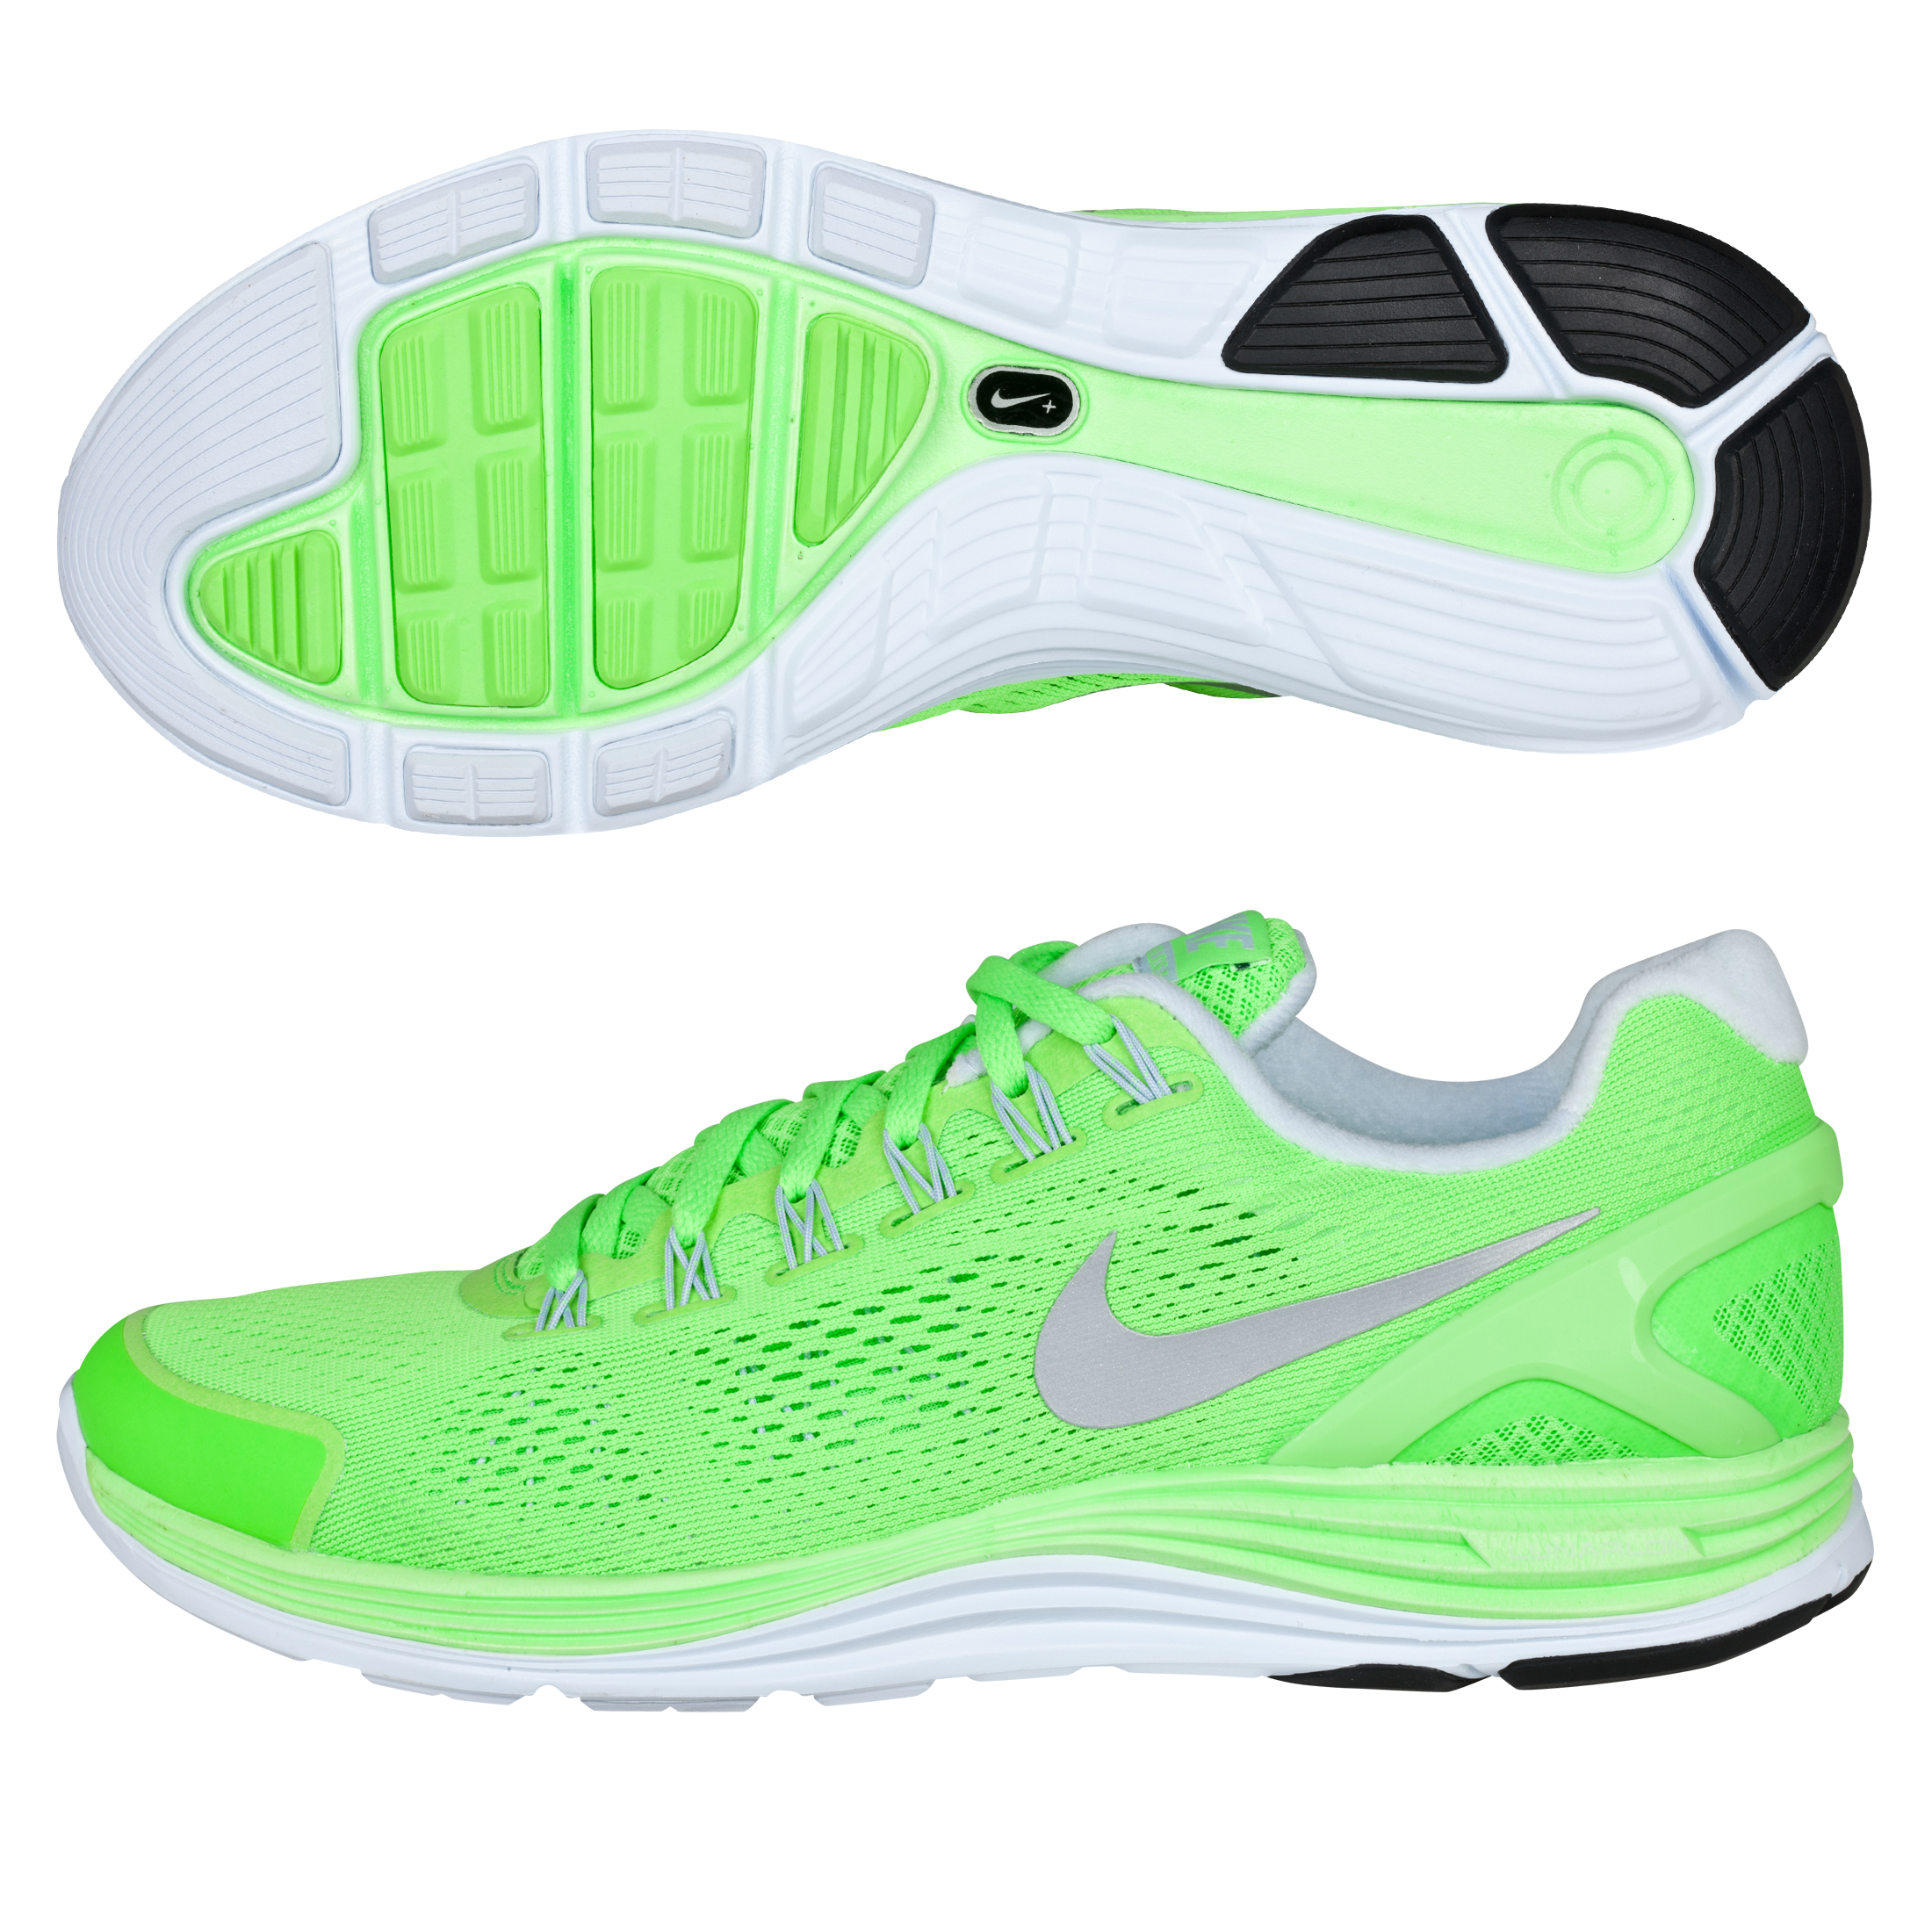 Nike Lunarglide+ 4 Trainers - Electric Green/Reflective Silver